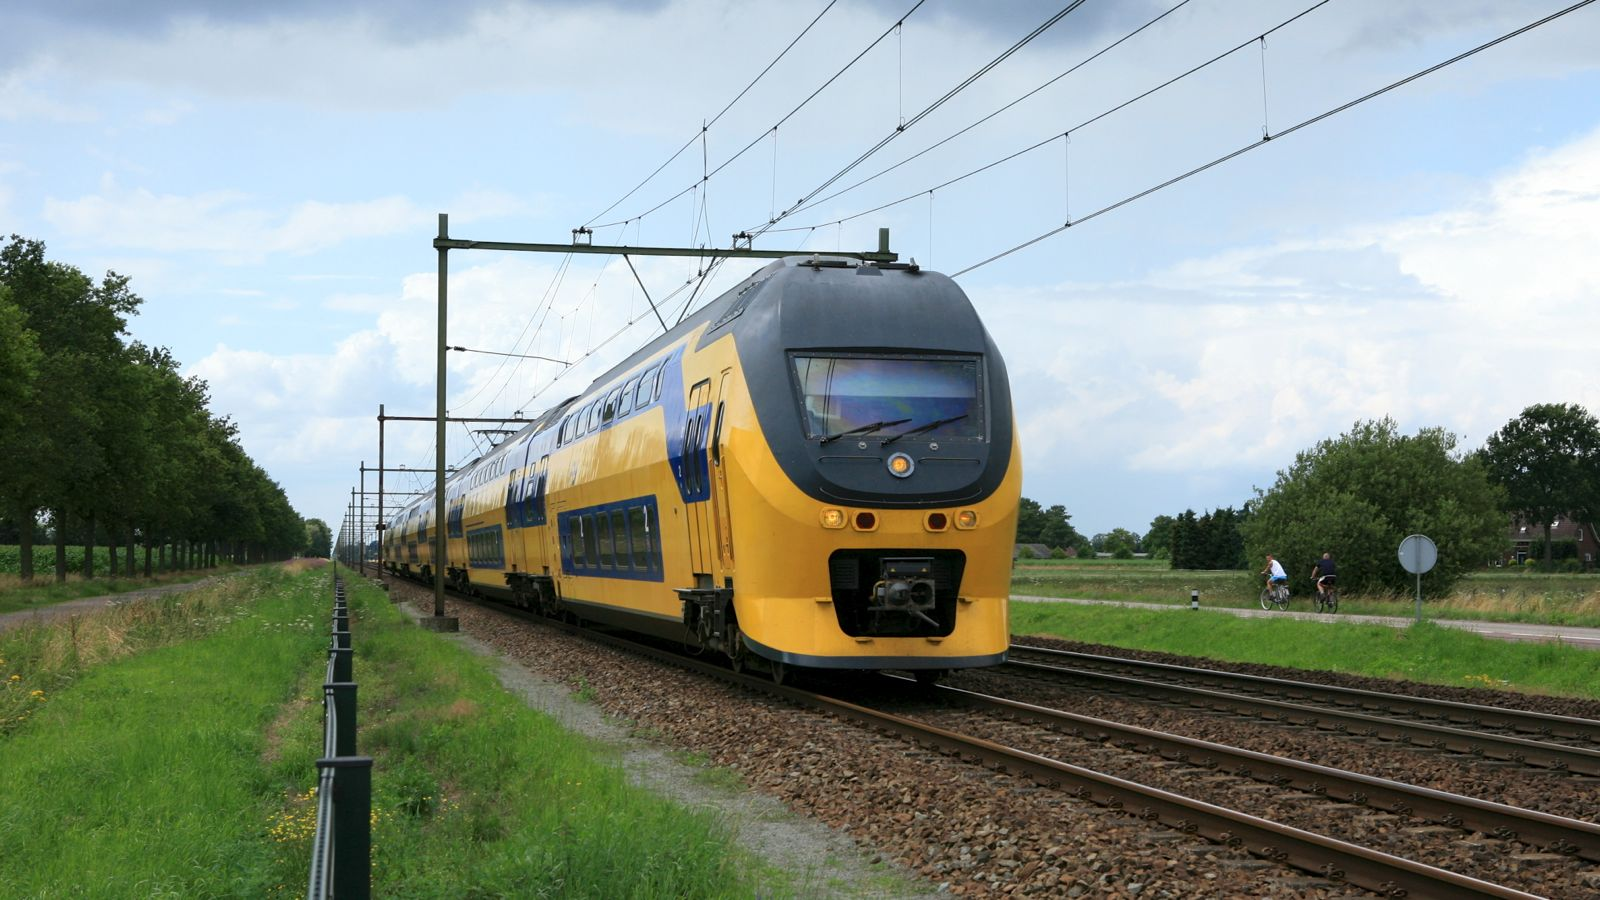 traveling through Holland by train (NS train)